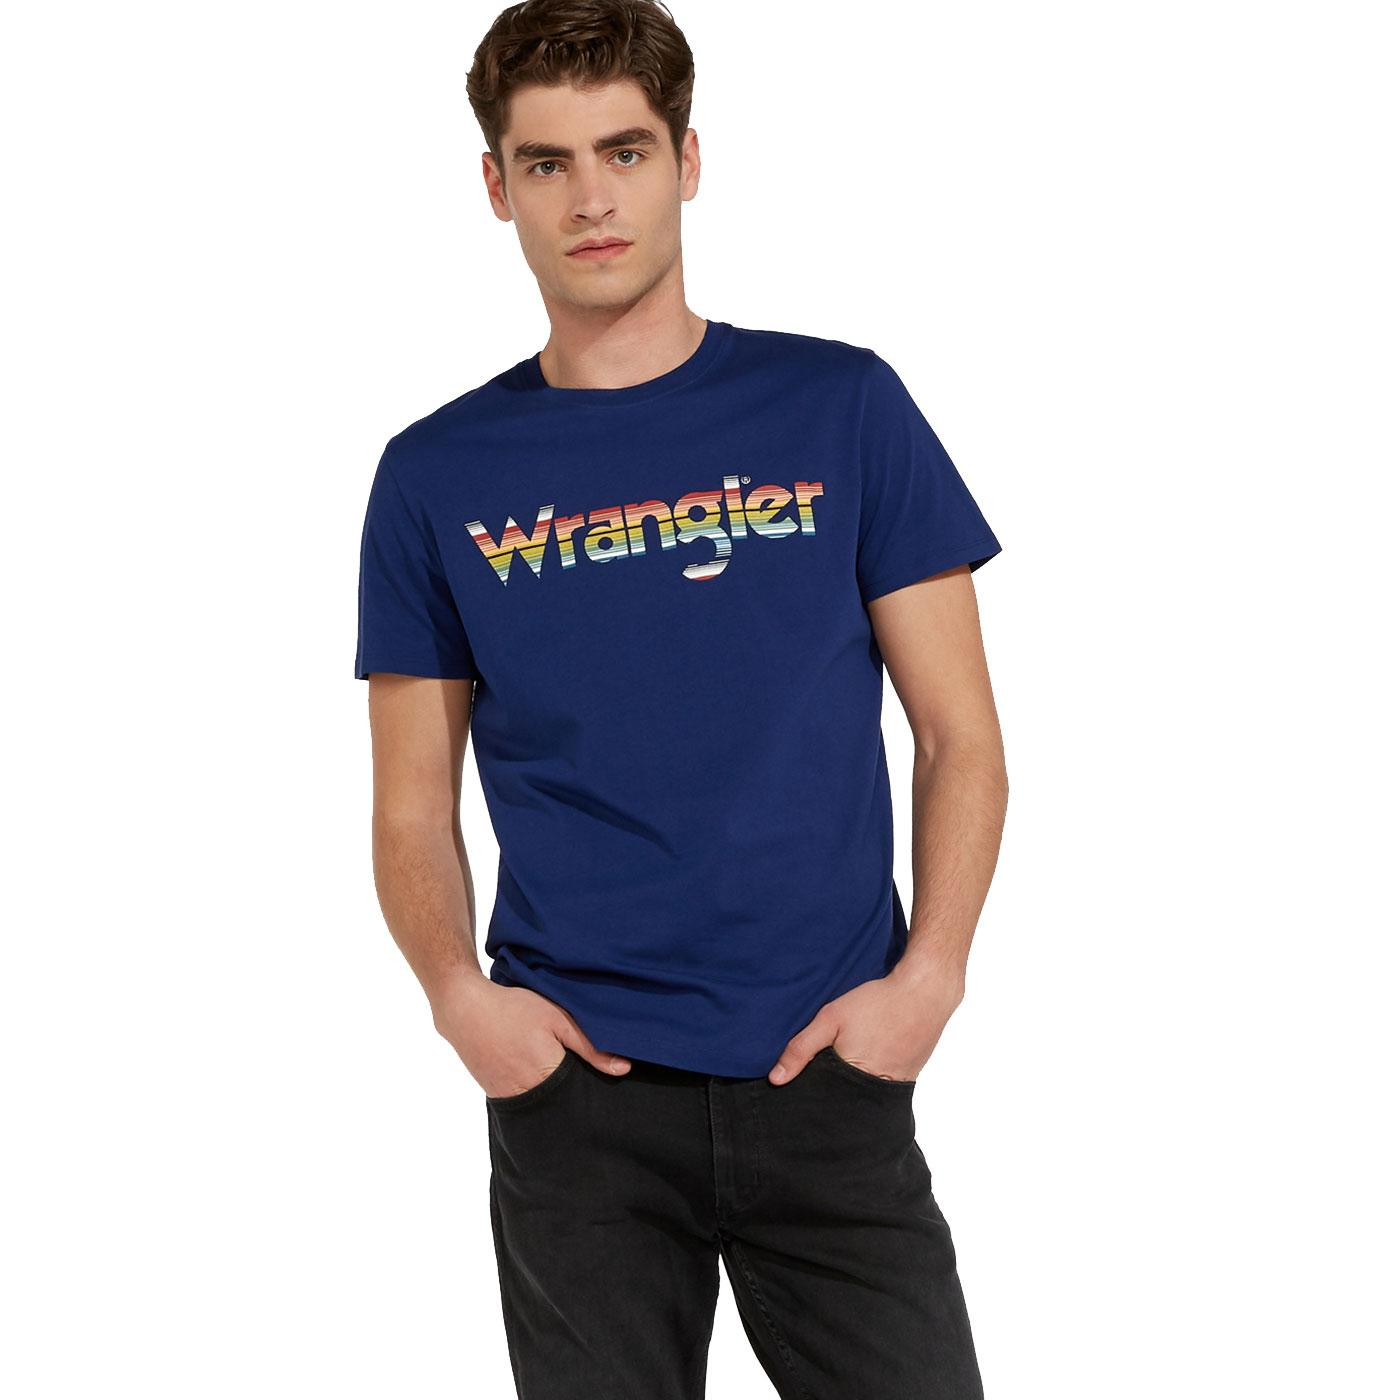 WRANGLER Retro 80's Chest Logo Tee in Blue Depths